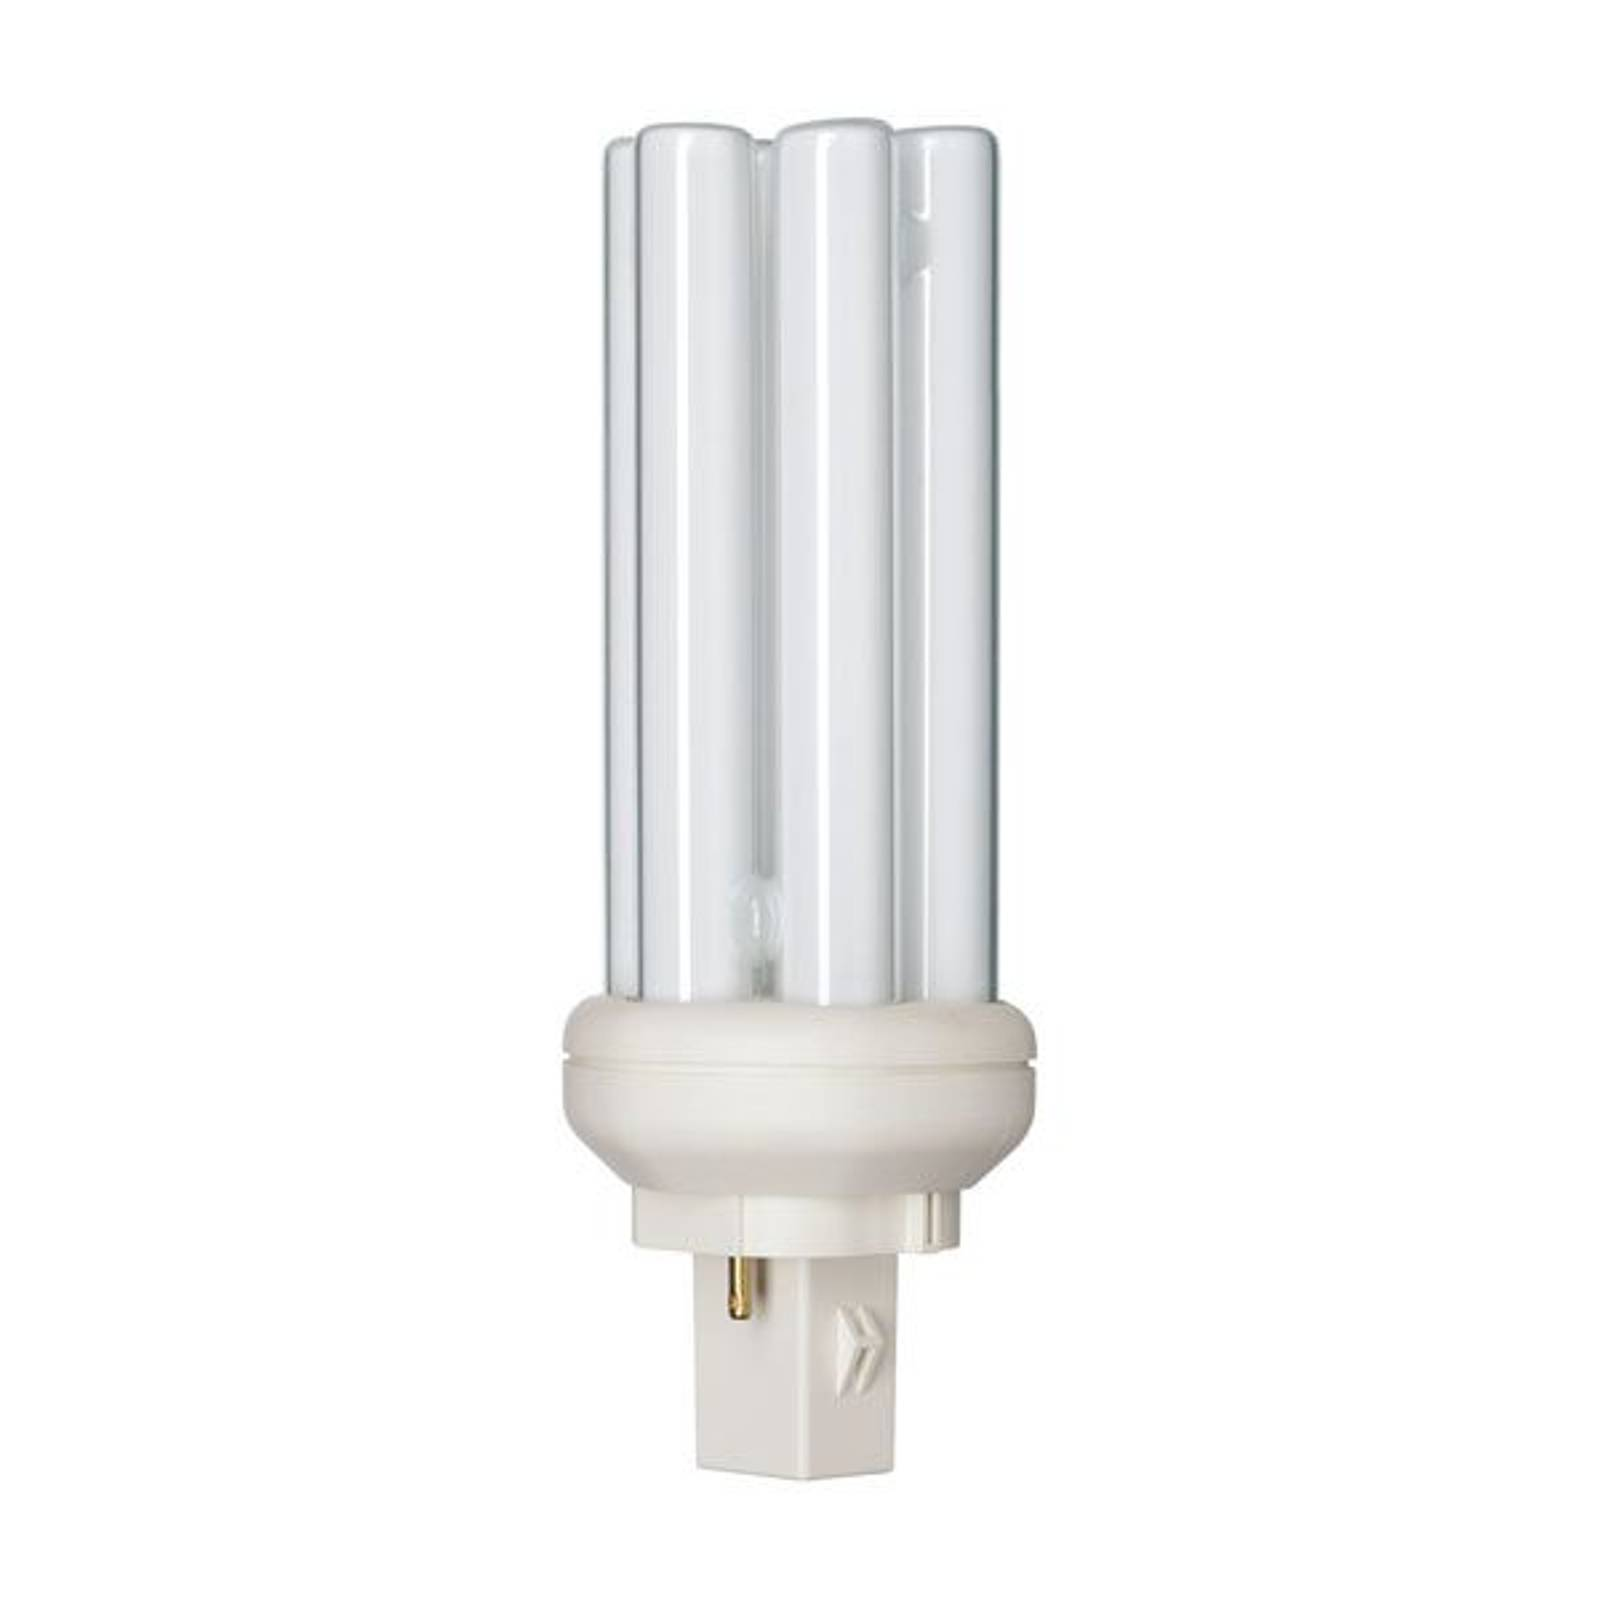 GX24d compact fluorescent bulb Master 26W PL-T 840 from Philips